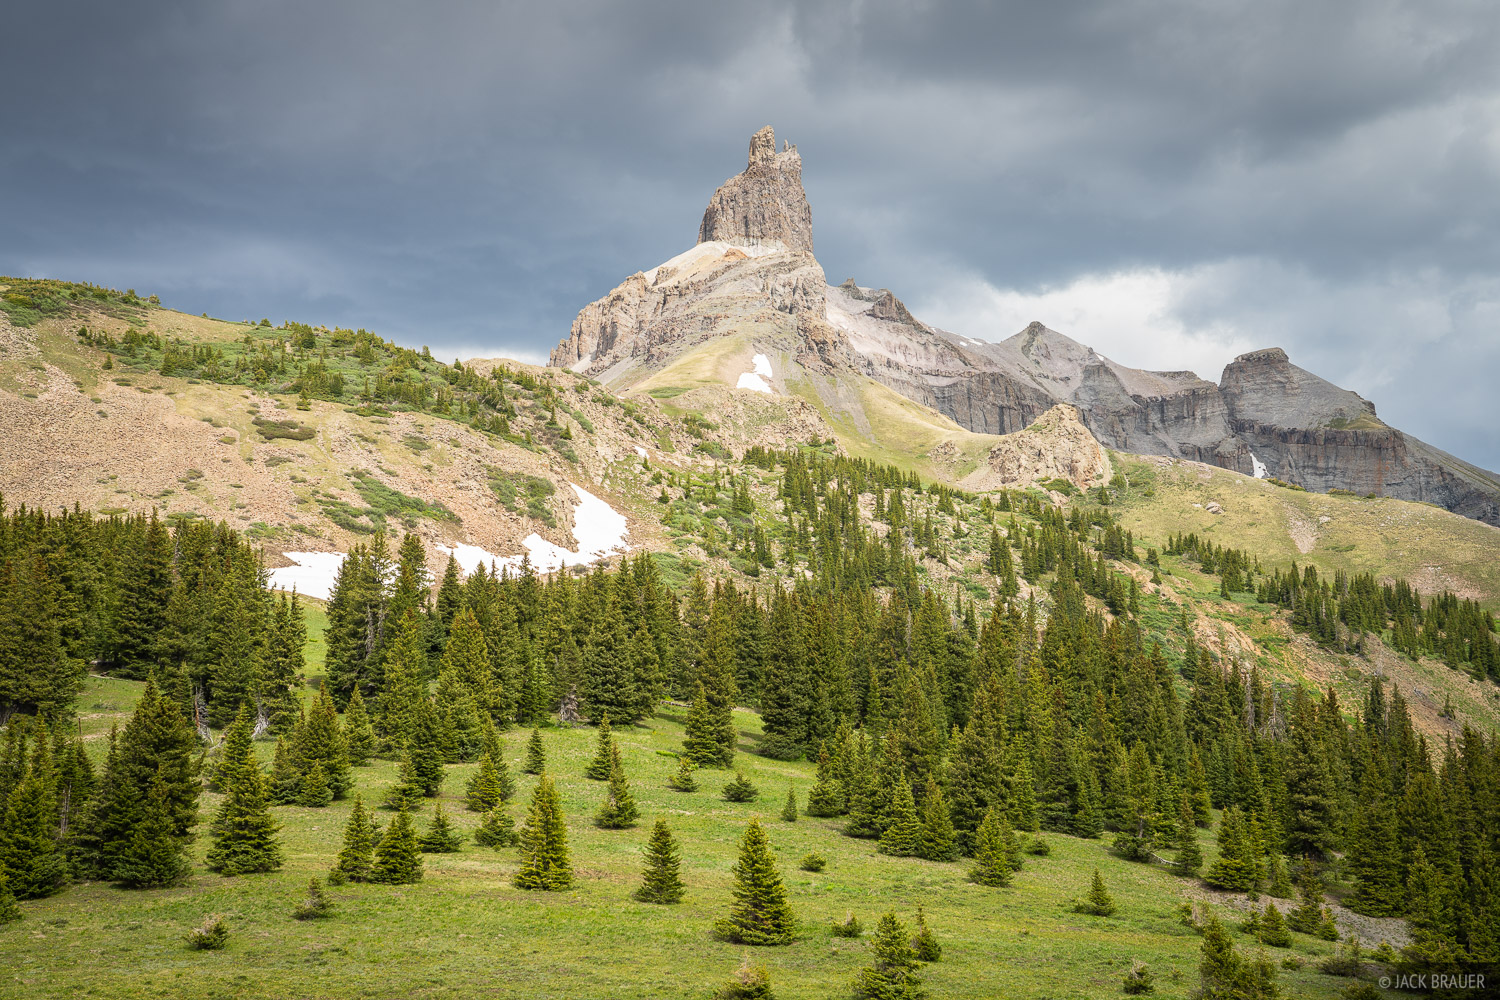 Colorado, Lizard Head Peak, Lizard Head Wilderness, San Juan Mountains, San Miguel Range, photo